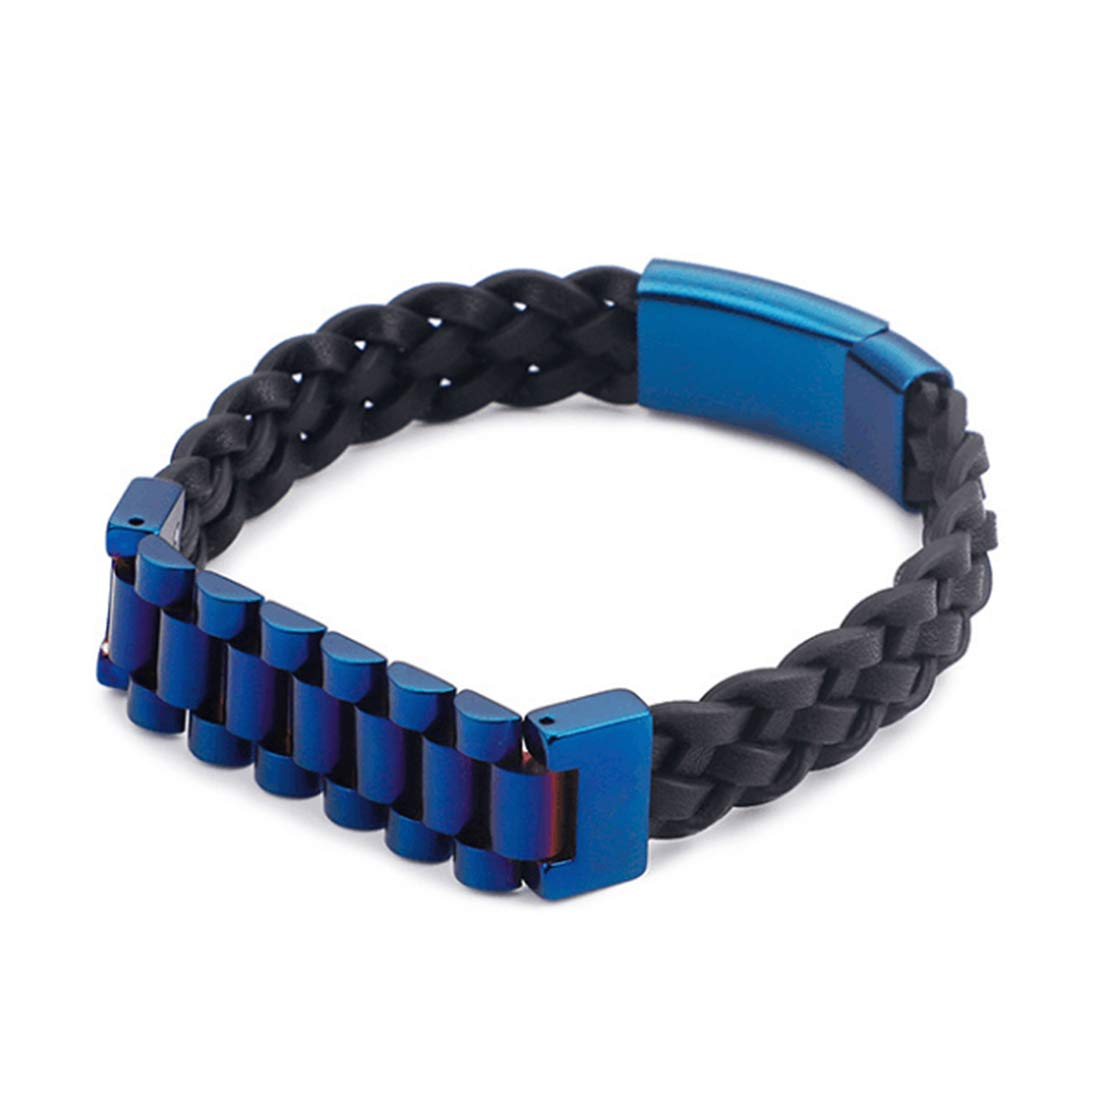 CEFULTY Men/'s Vintage Leather Bracelet Stainless Steel Woven Wrist Cuff Bangle Magnetic Clasp Color : Blue